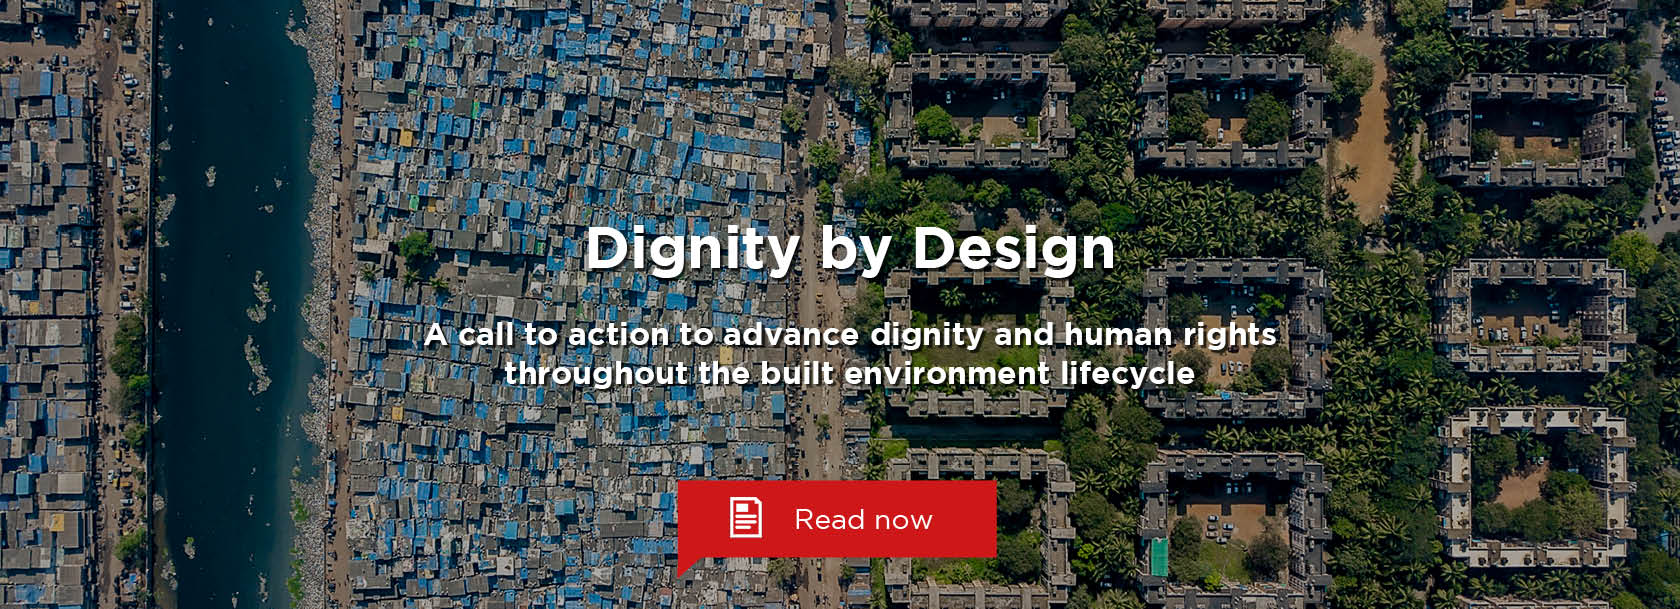 Dignity by Design: Human Rights and the Built Environment Lifecycle